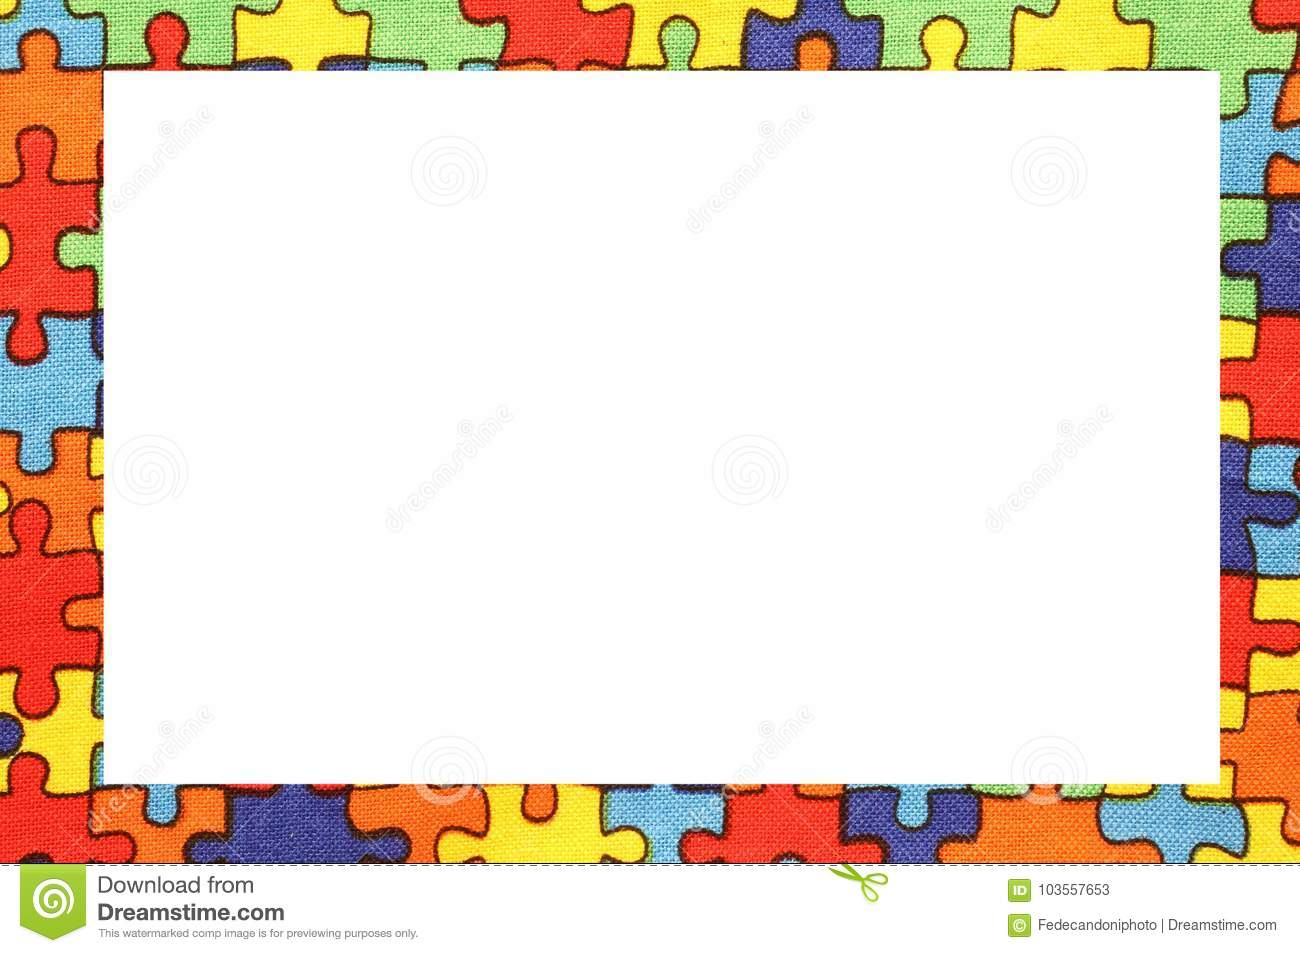 Frame Of Colorful Puzzle Pieces On Cotton Dyed Fabric Stock Image ...